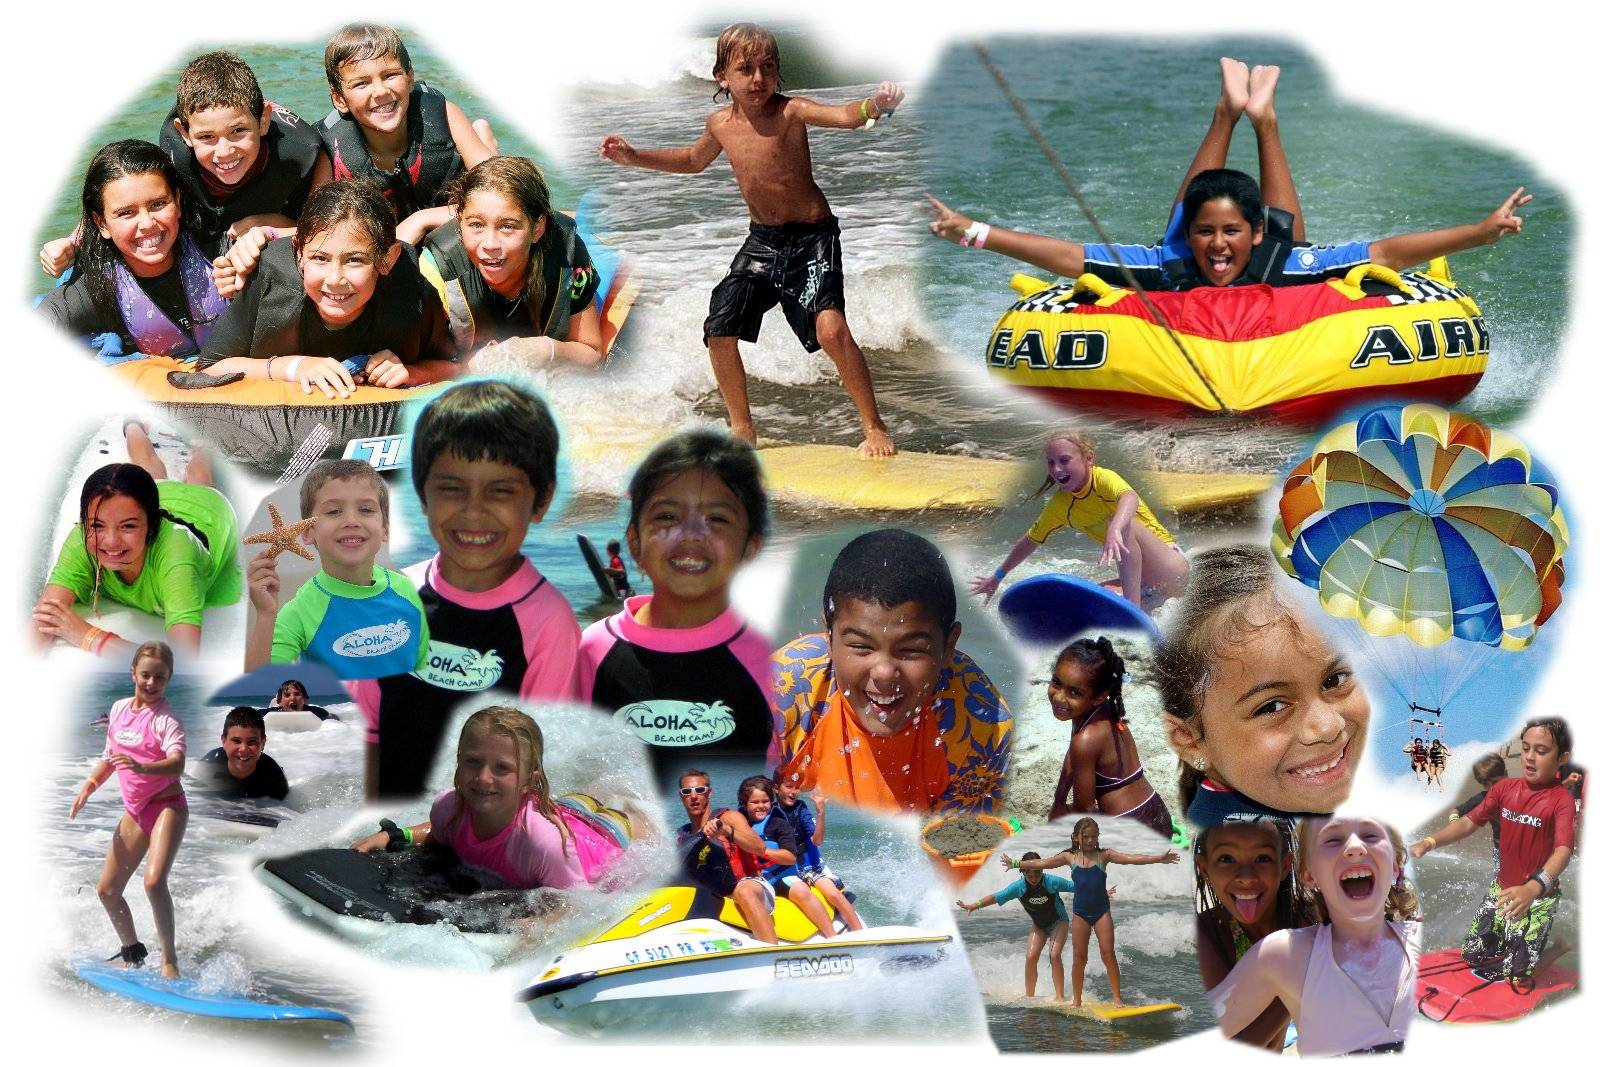 Los Angeles Summer Camp | Aloha Beach Camp Blog: Picture ...